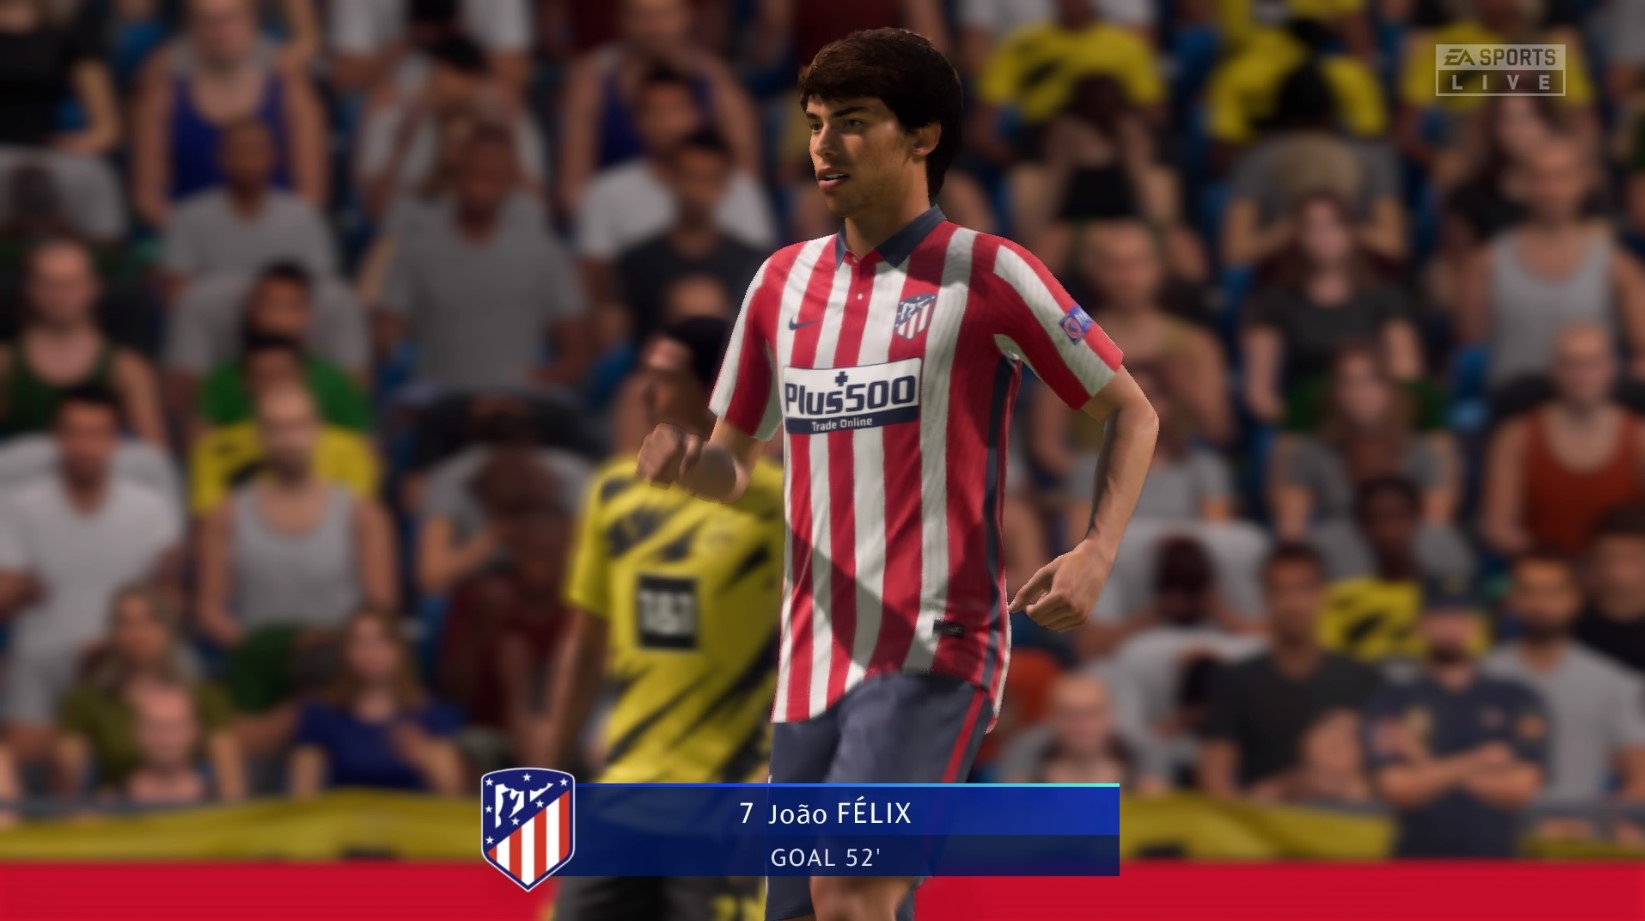 Fifa 21 Best Young Players Where To Find The Top Wonderkids In World Football Vg247